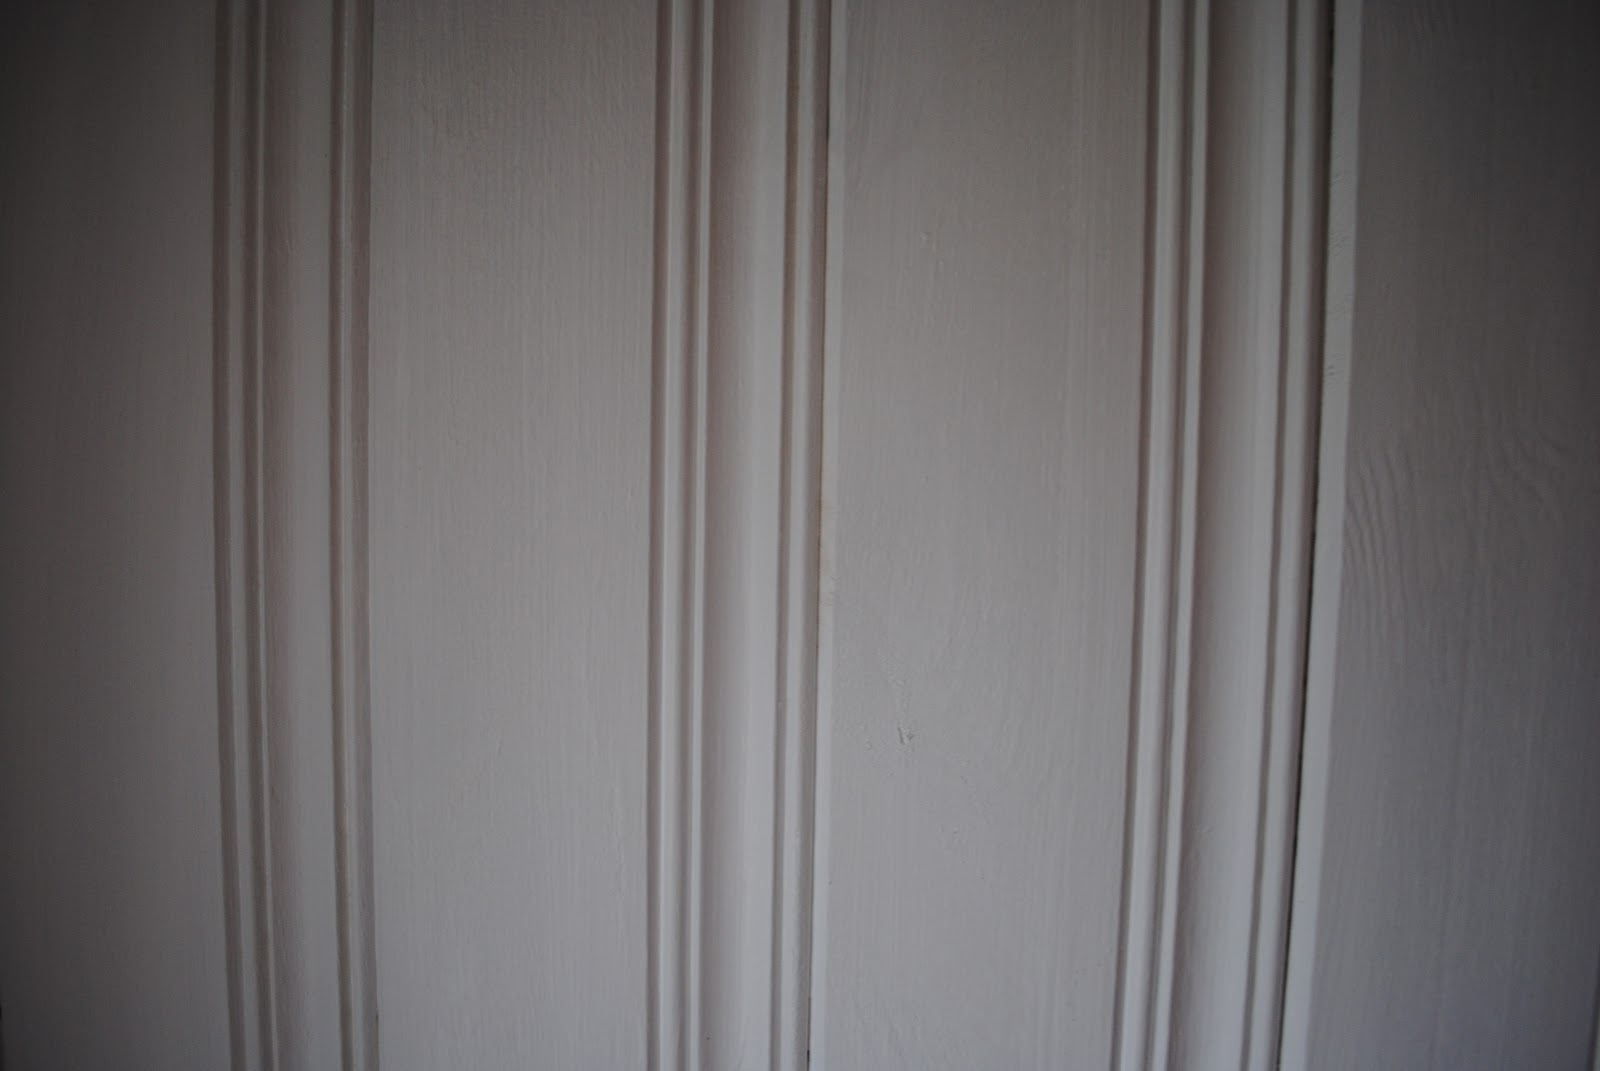 House By Holly To Paint Knotty Pine Or Not Paint Knotty